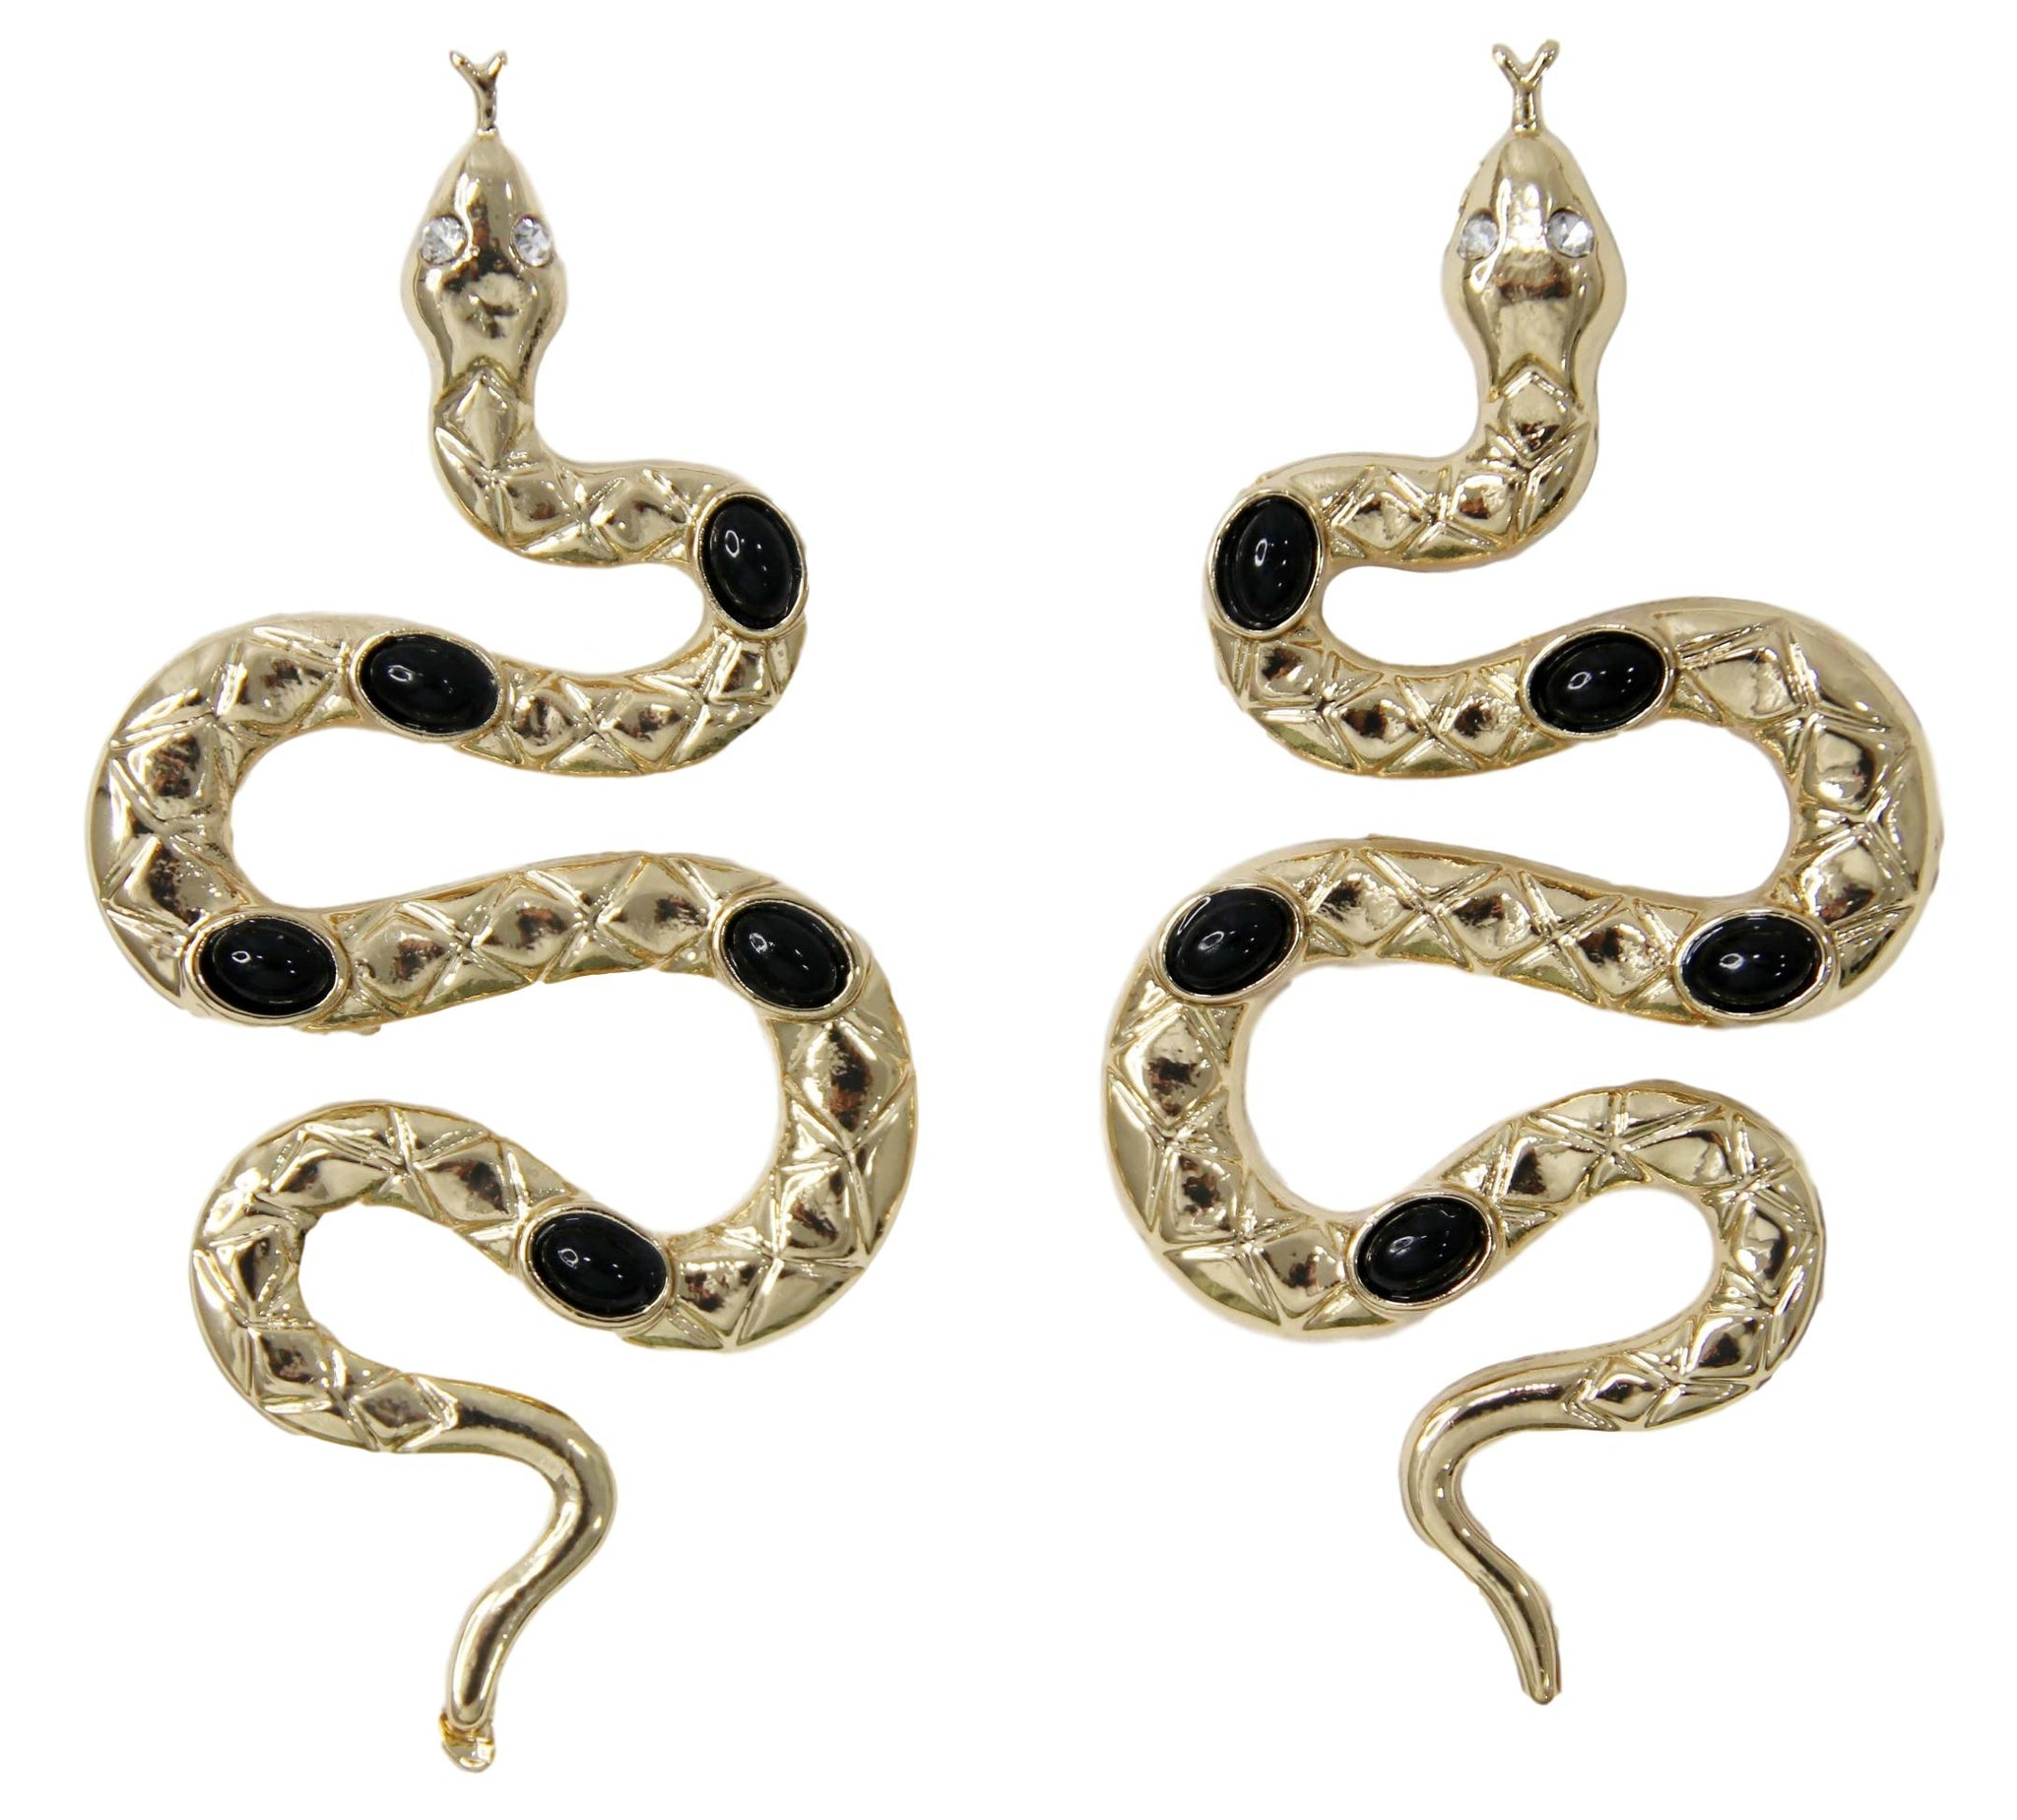 Gold Snake Earrings with Black Stone Embellishment